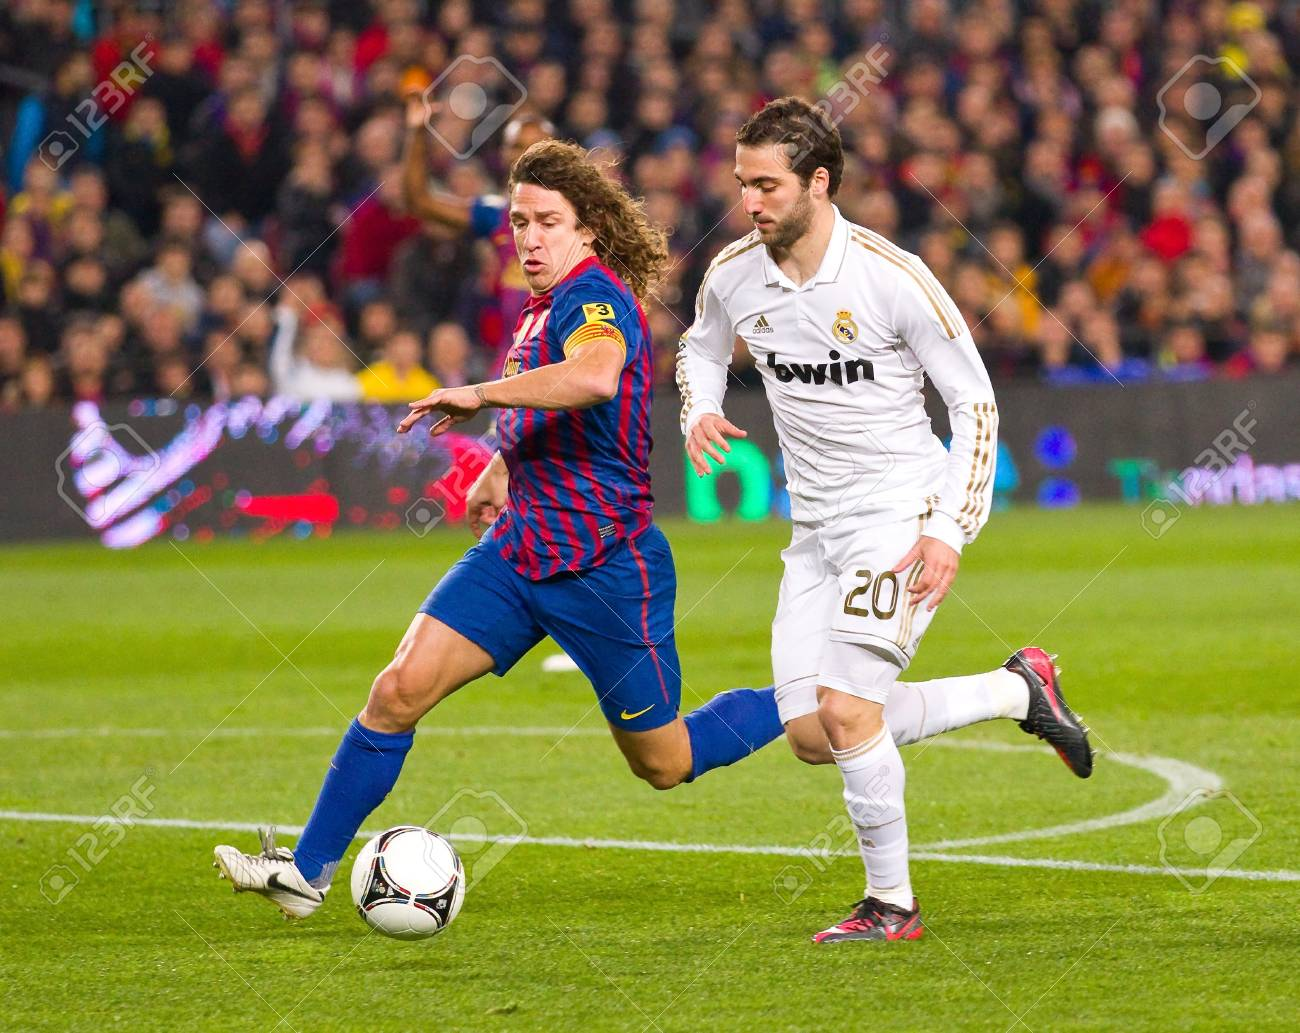 BARCELONA - JANUARY 25: Carles Puyol and Gonzalo Higuain in action during the Spanish Cup match between FC Barcelona and Real Madrid, final score 2 - 2, on January 25, 2012, in Barcelona, Spain Stock Photo - 14755534